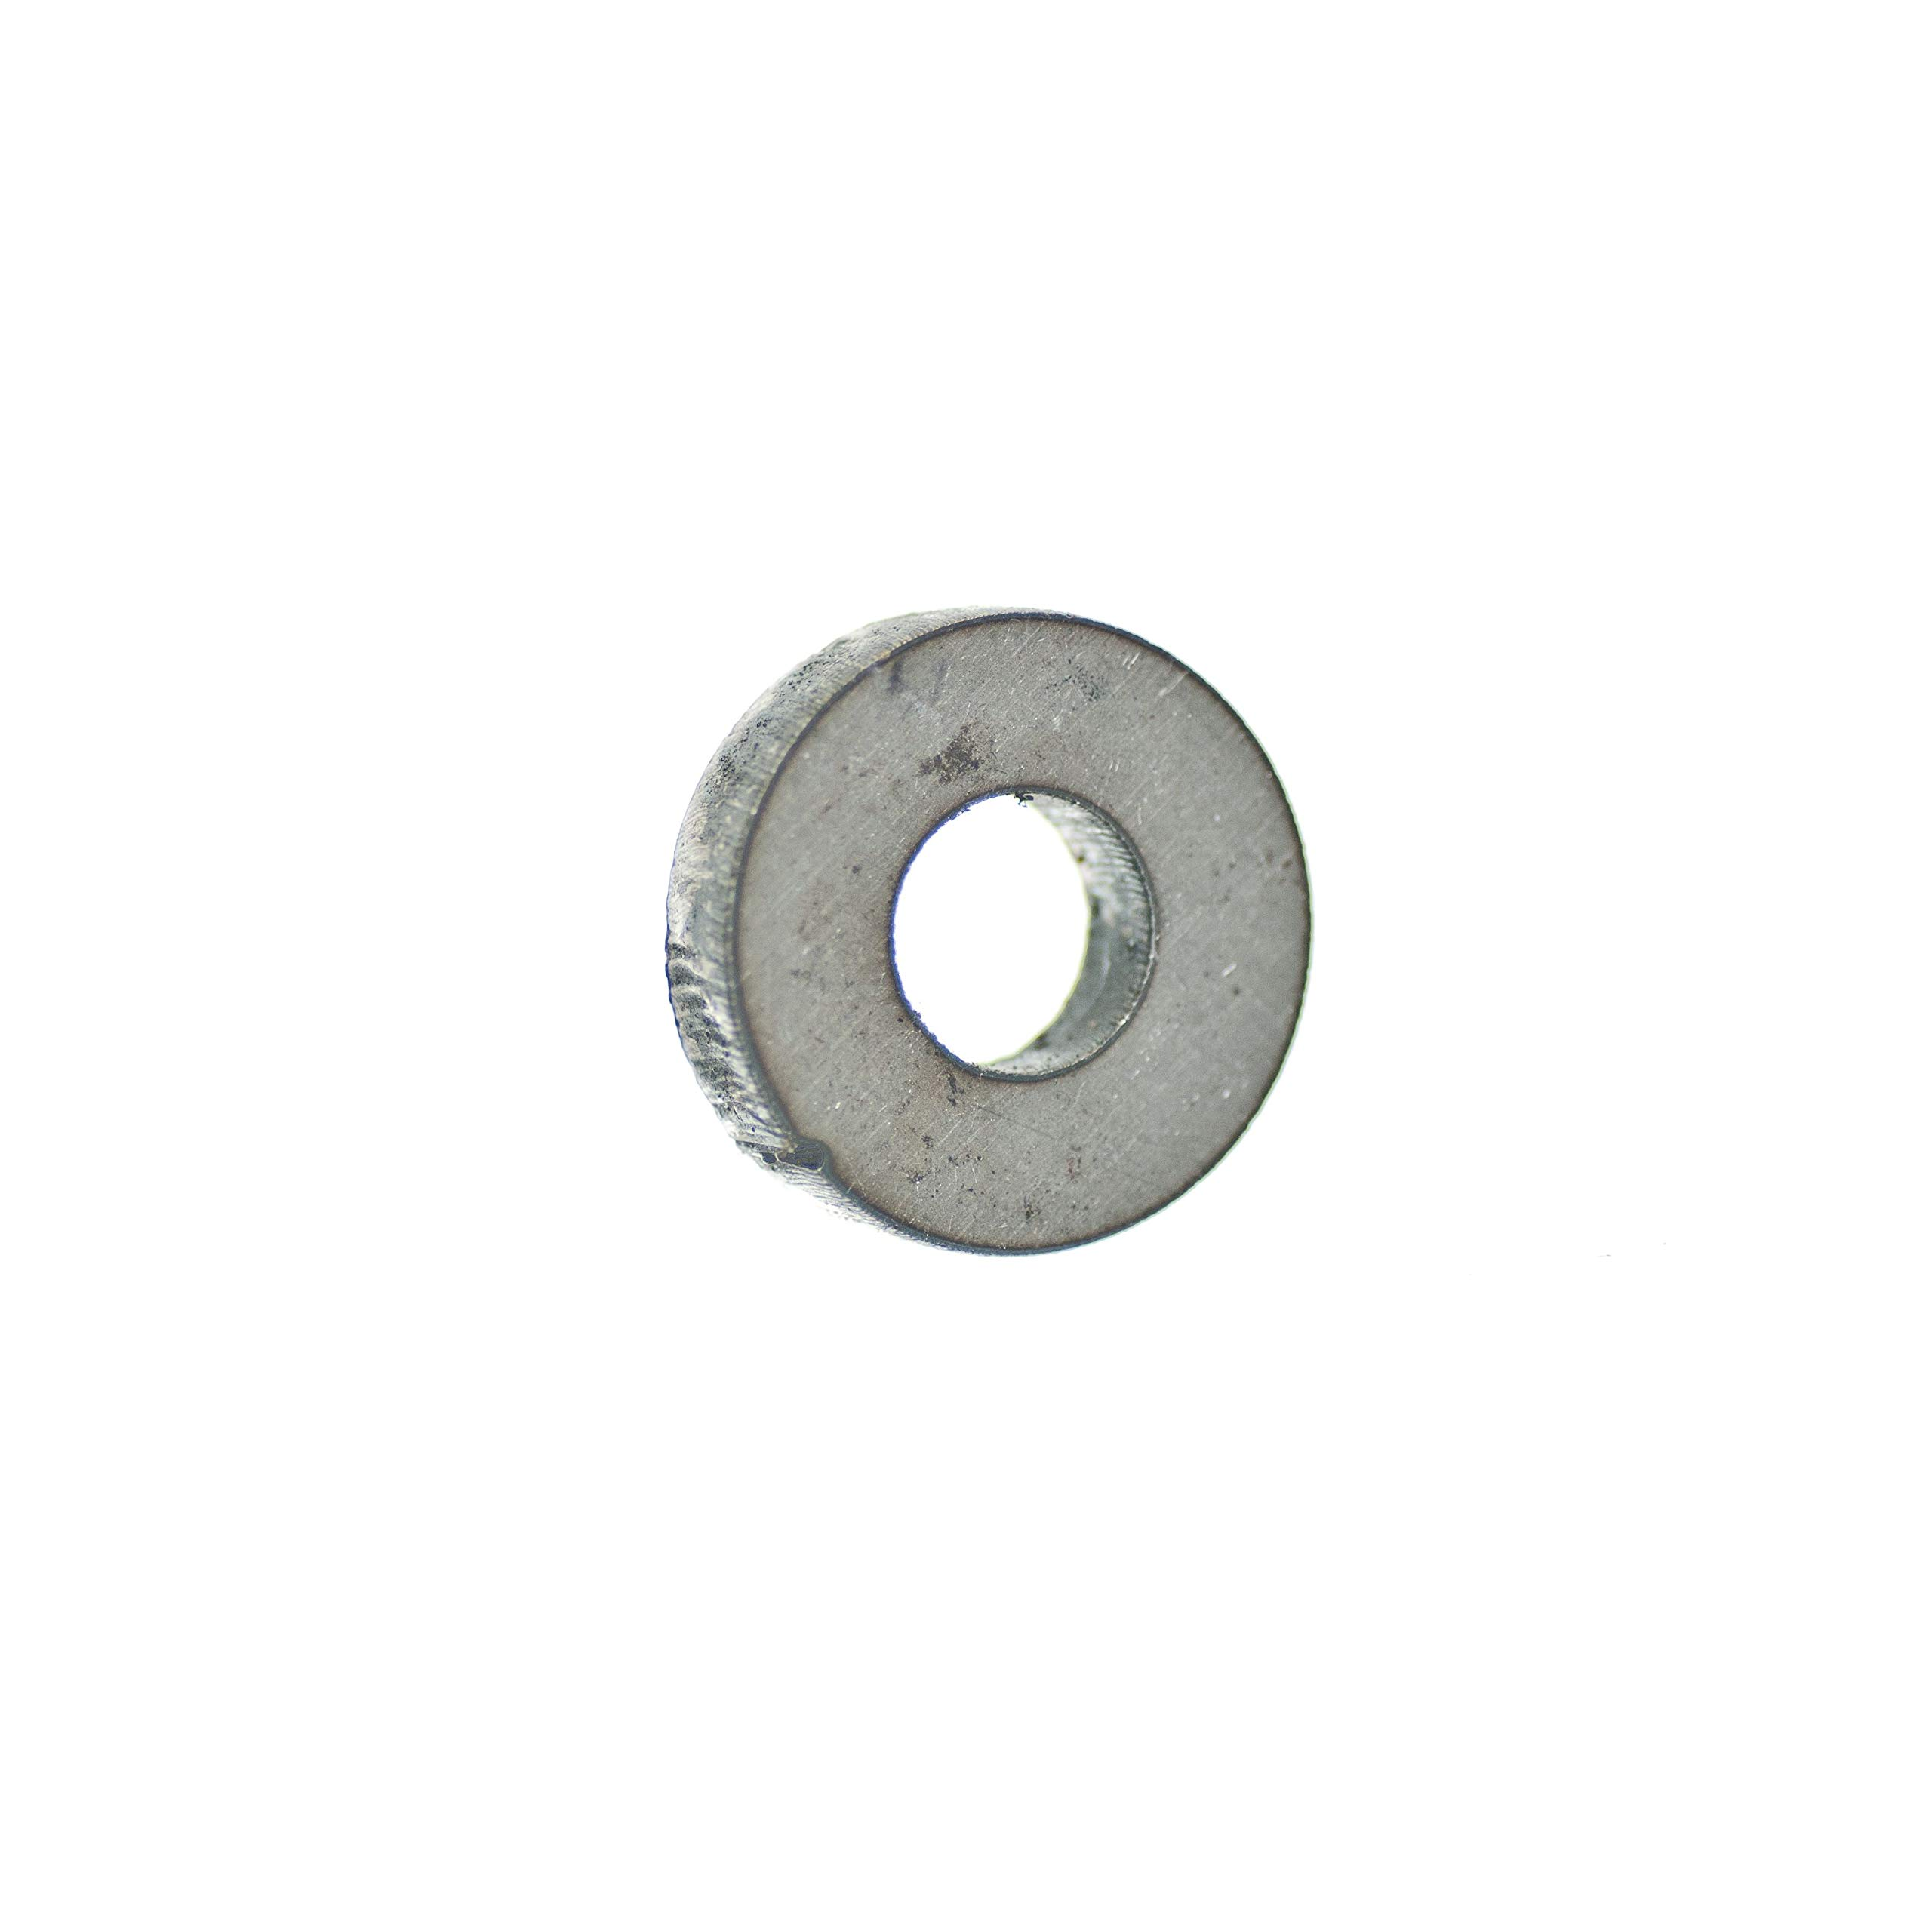 SPACER 3/16 INCH STAINLESS STEEL PAIR